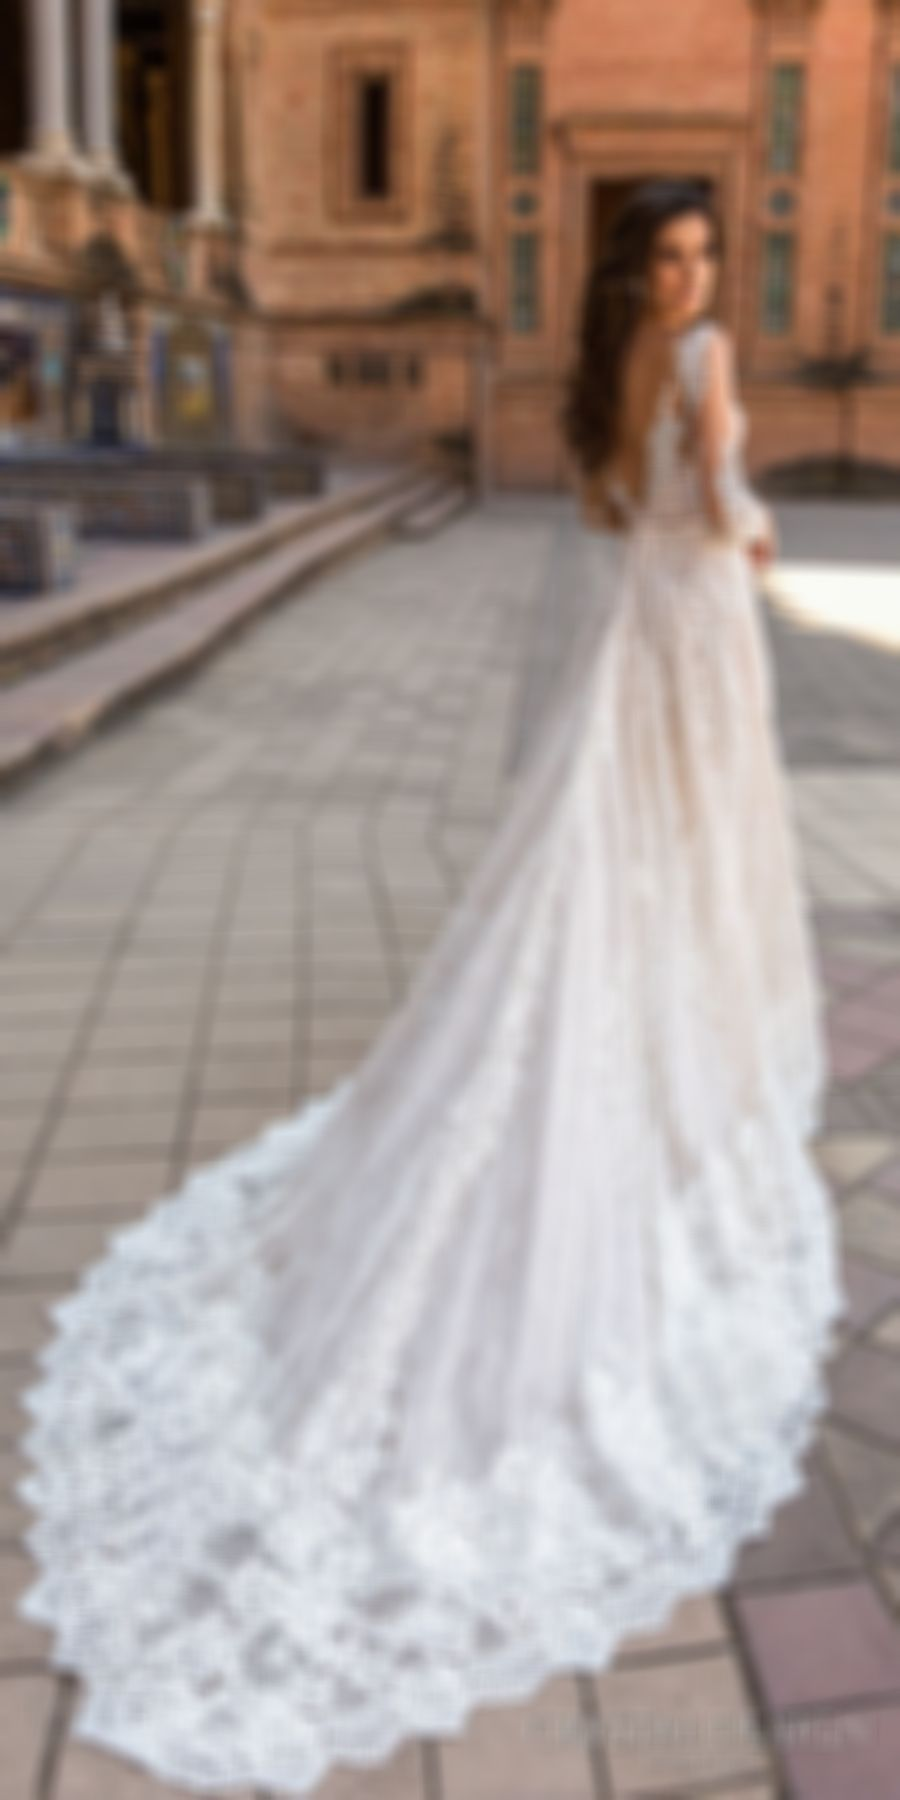 New Wedding Dresses Best Place To Buy A Dress For A Wedding  Wedding Decor Stores Near Me Beautiful Bride Boutique Bridal Stores In Brooklyn Free Shipping